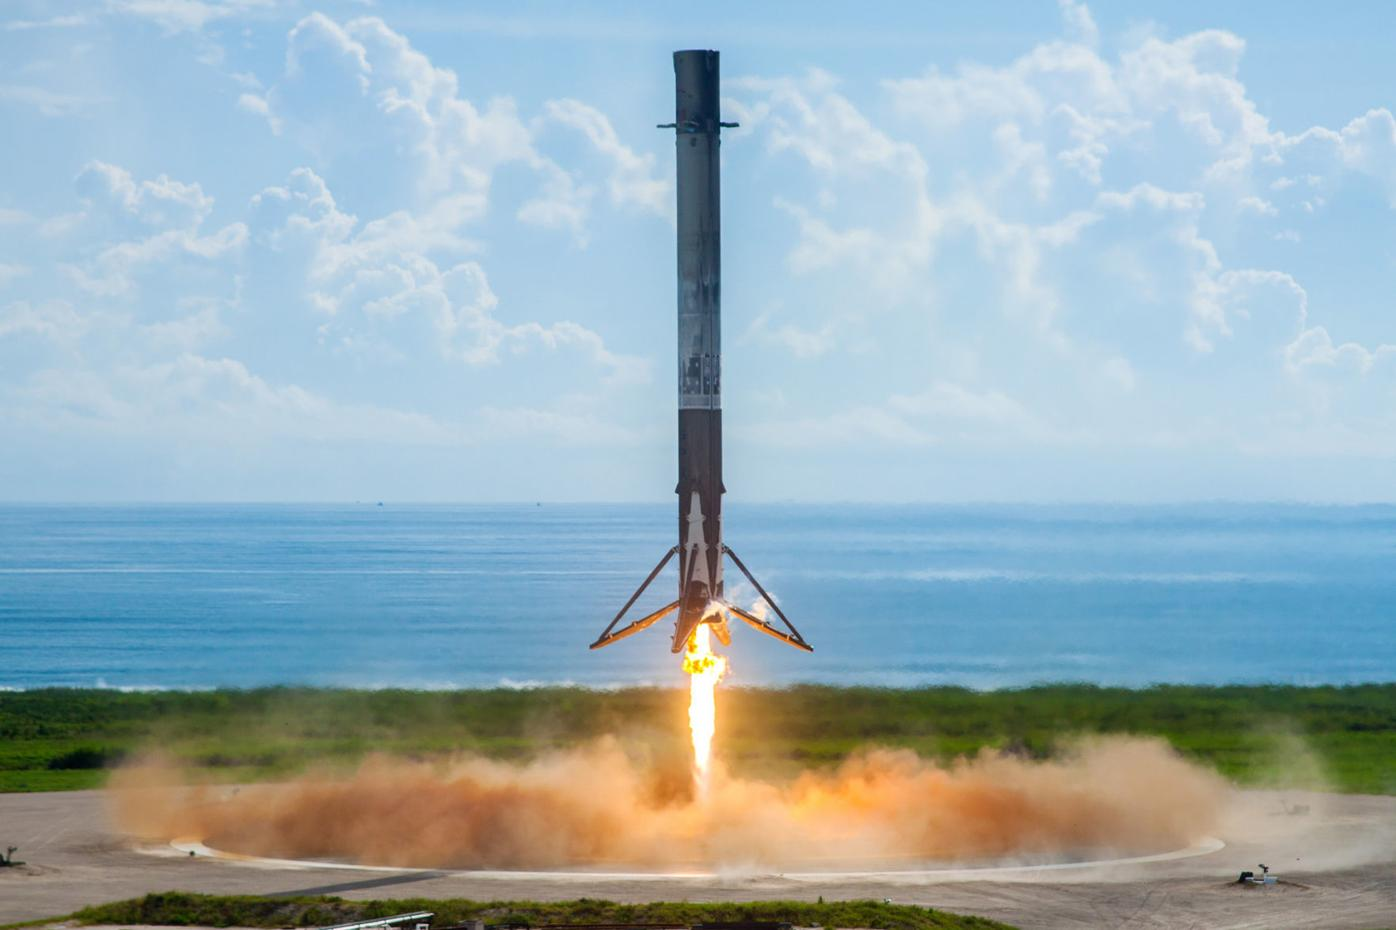 SpaceX landing in Florida